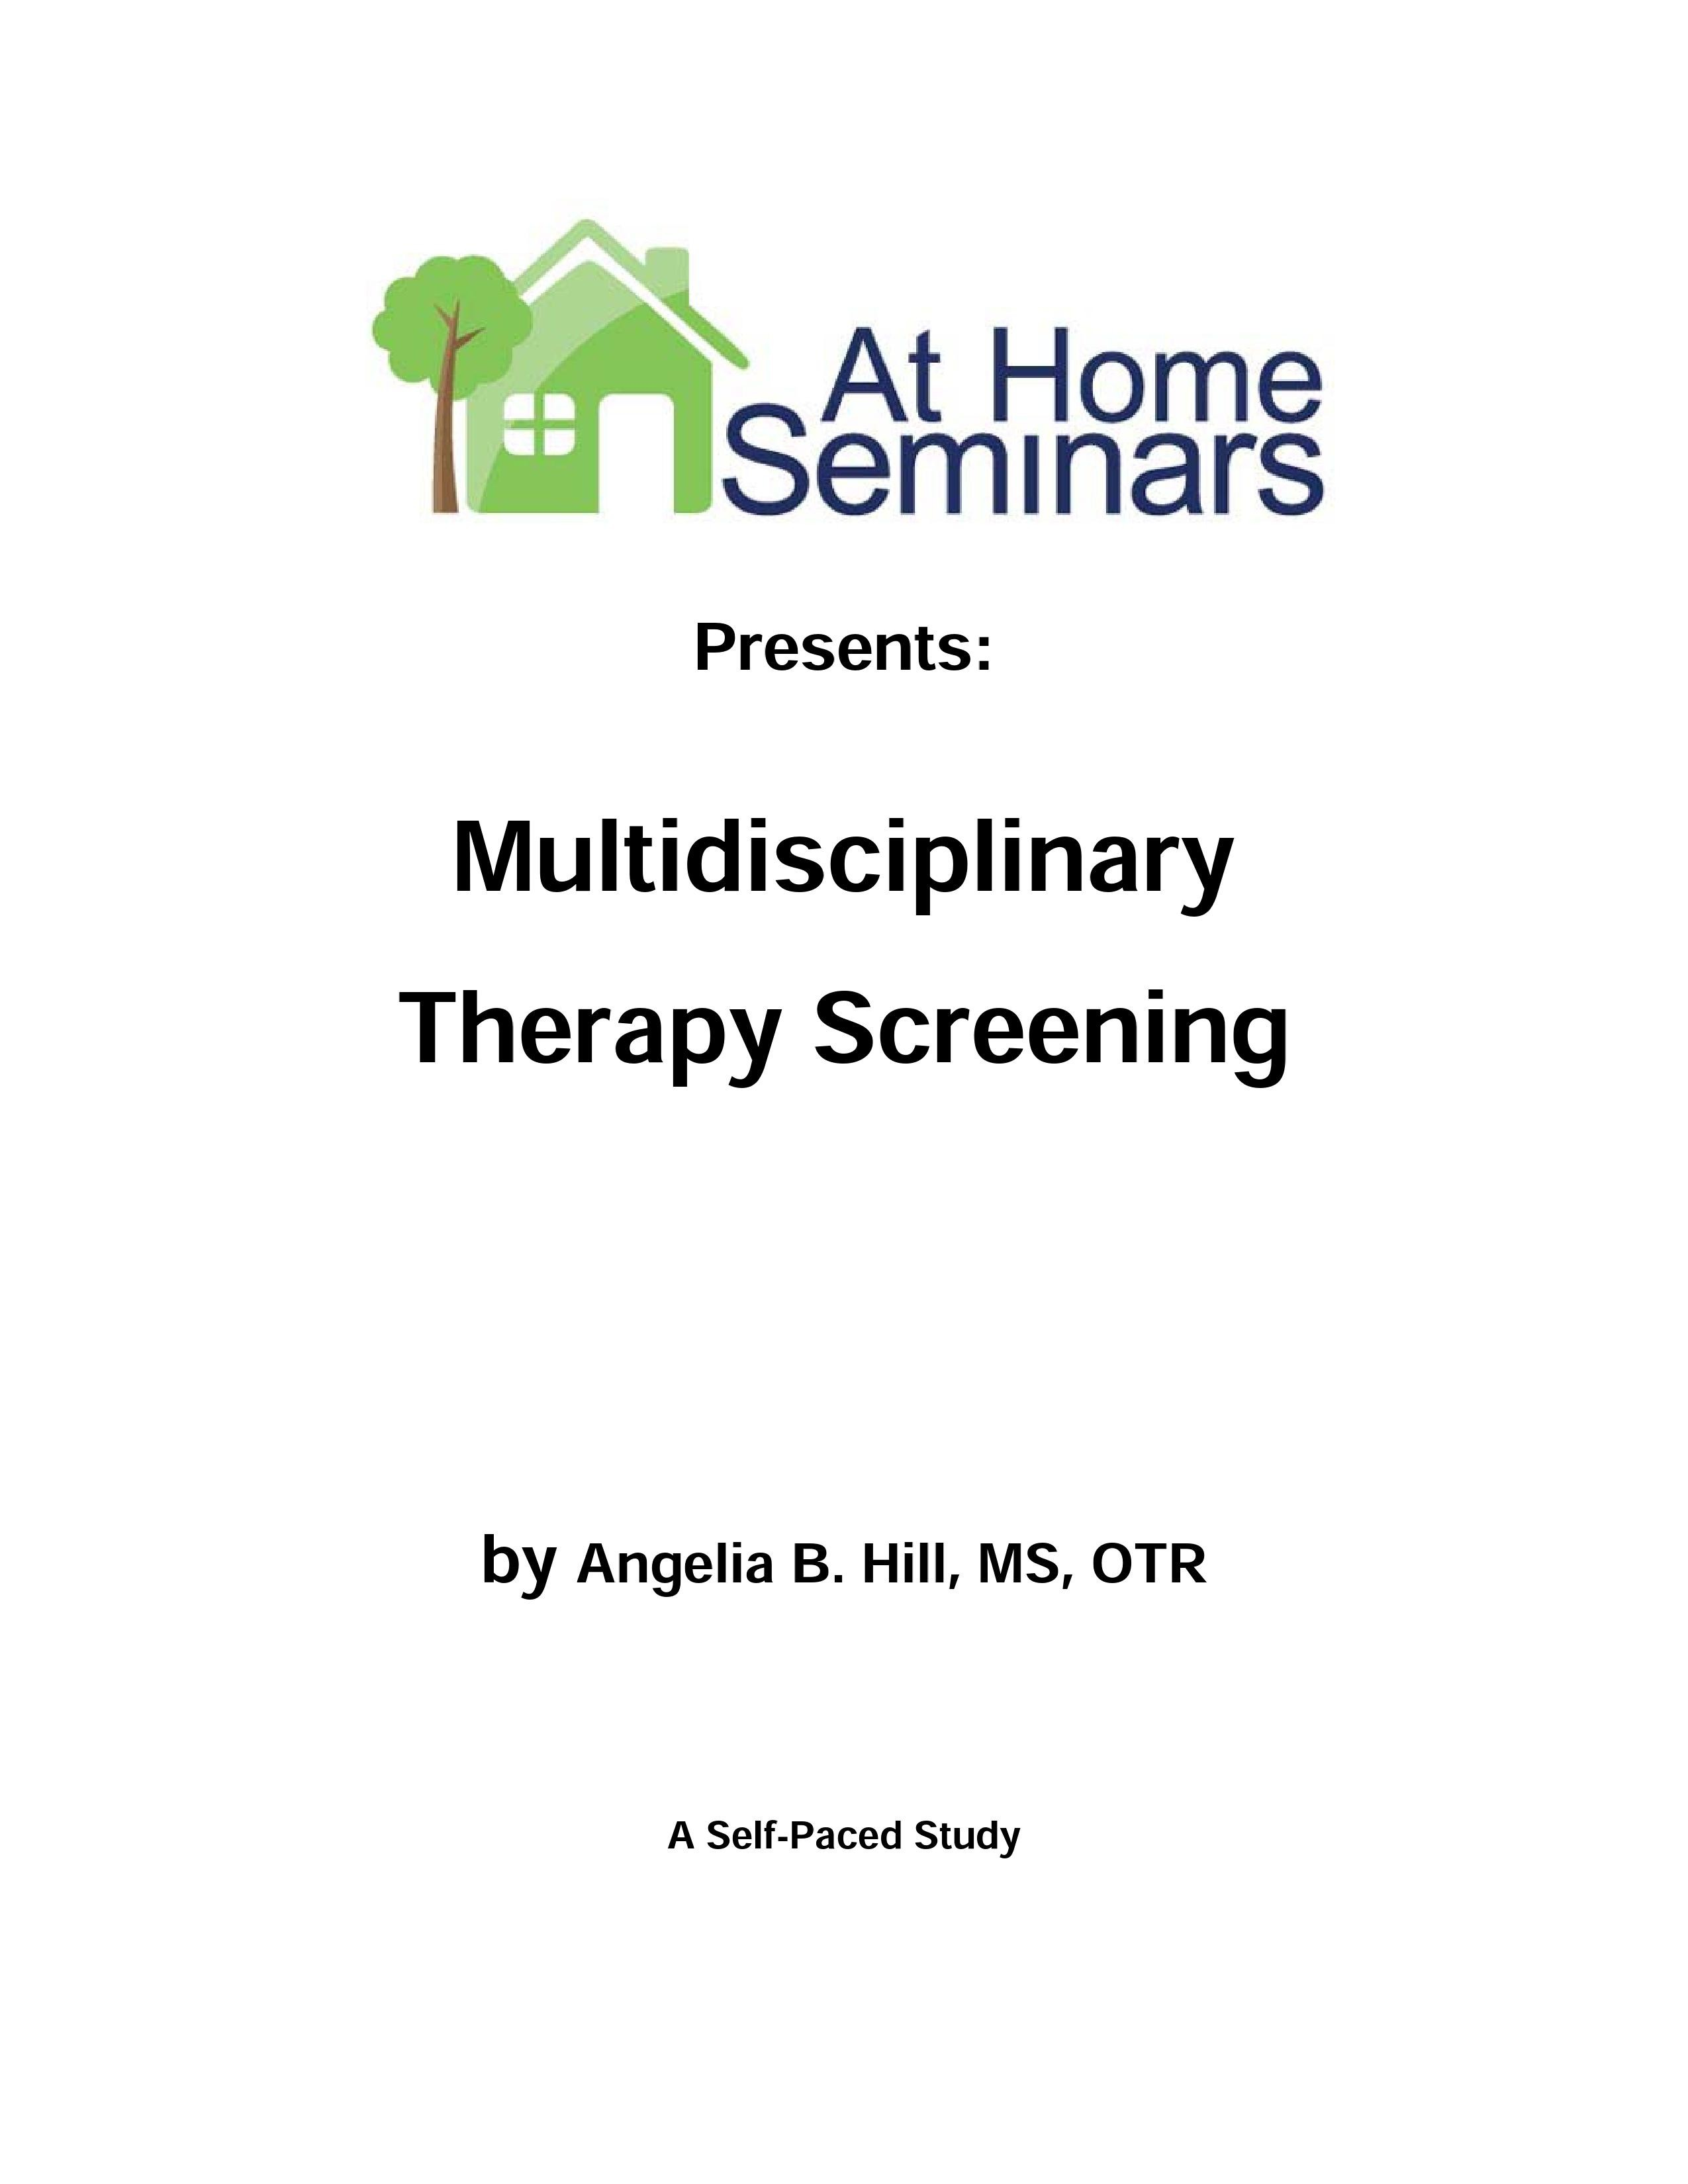 Multidisciplinary Therapy Screening